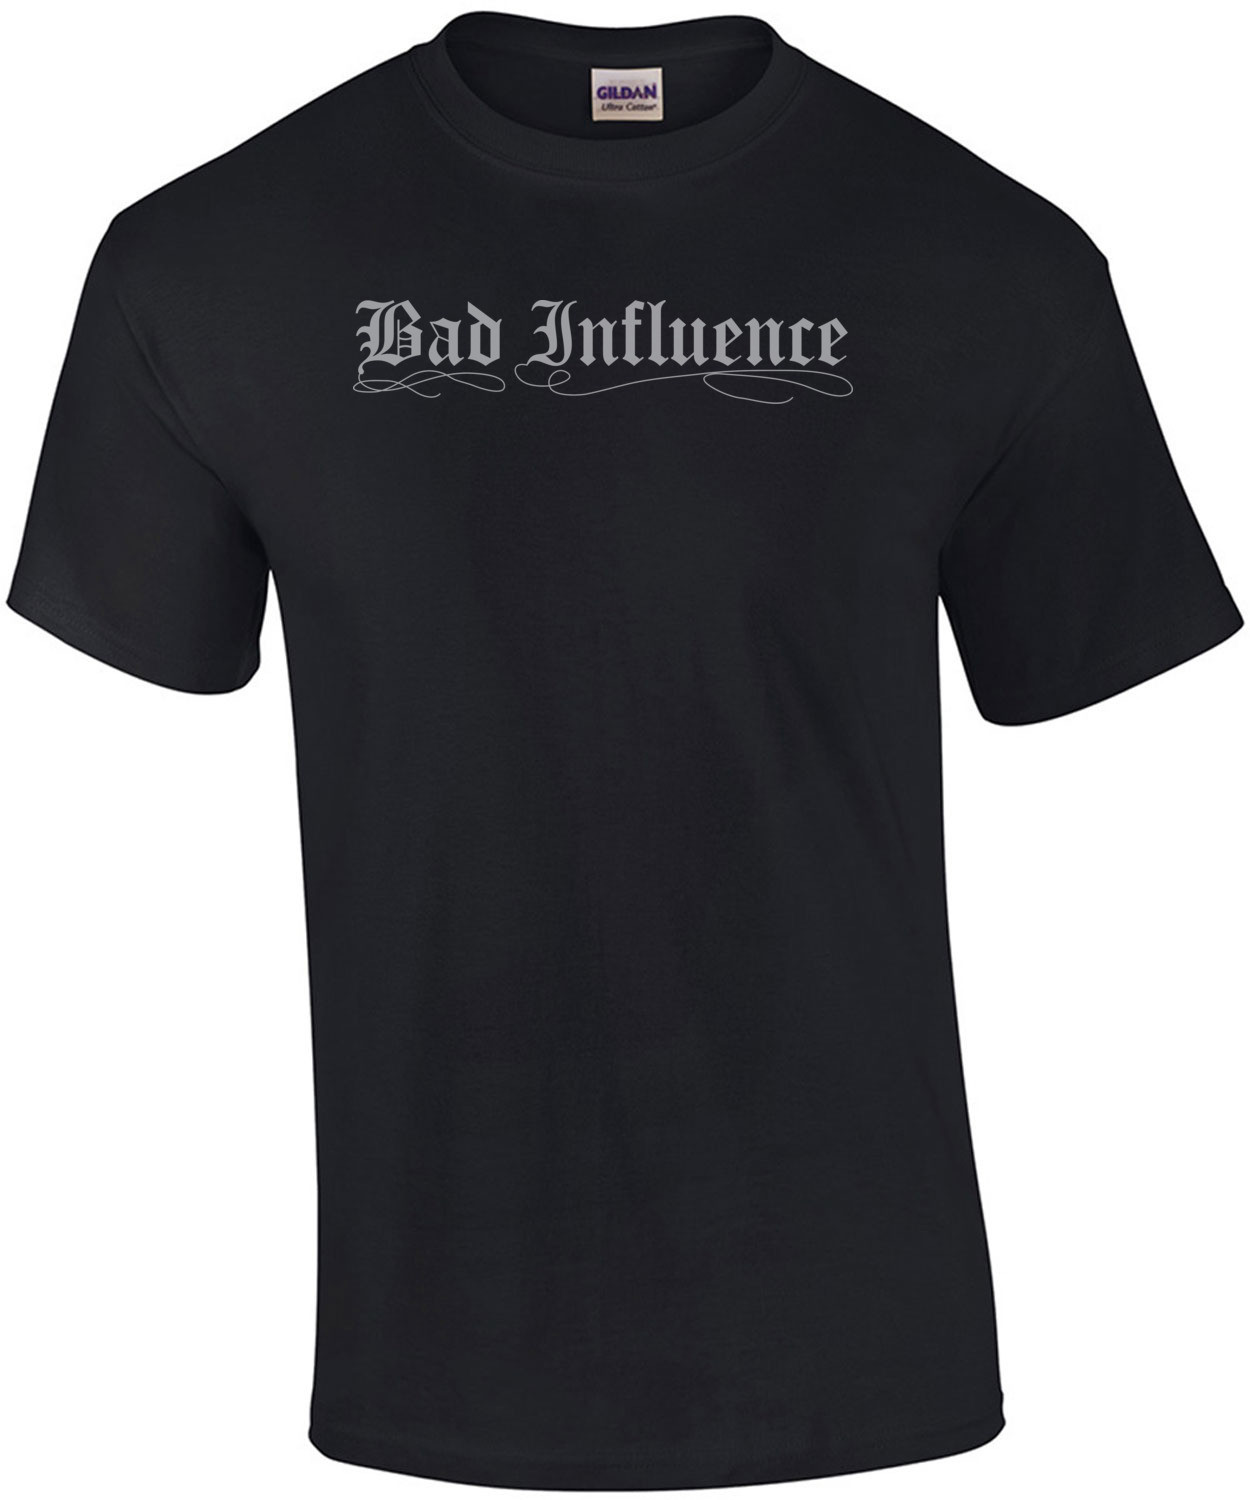 Bad Influence Funny T-shirt